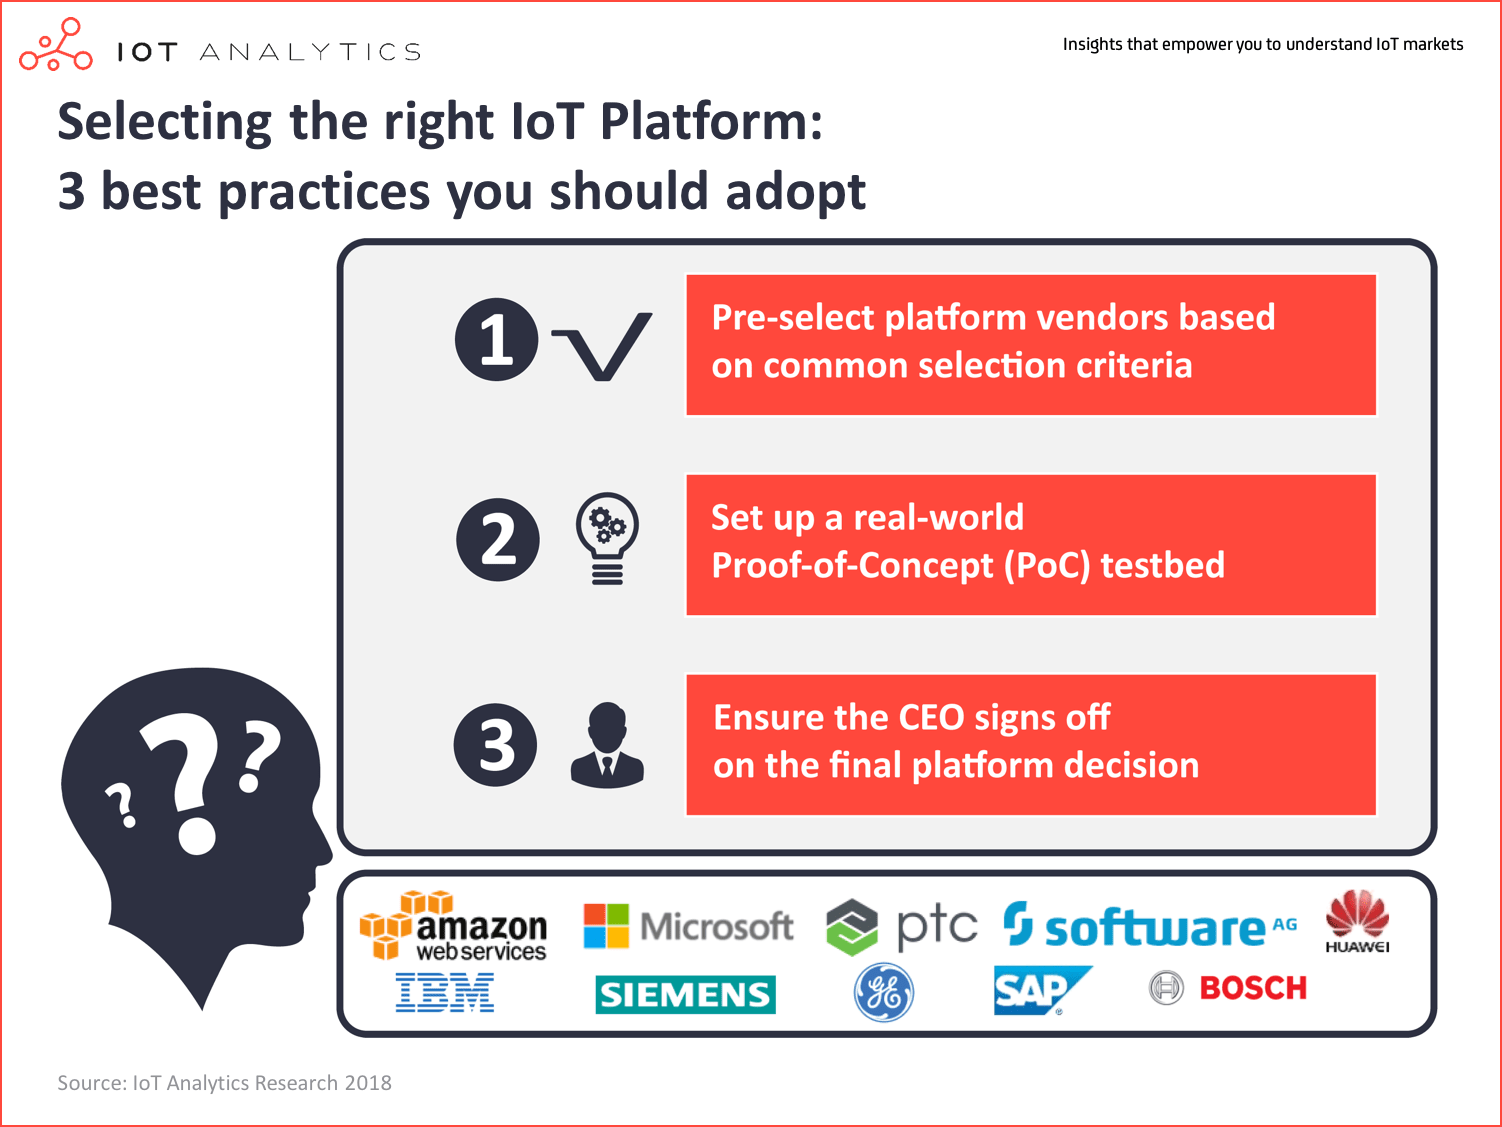 selecting the right iot platform - 3 best pratices you should adopt